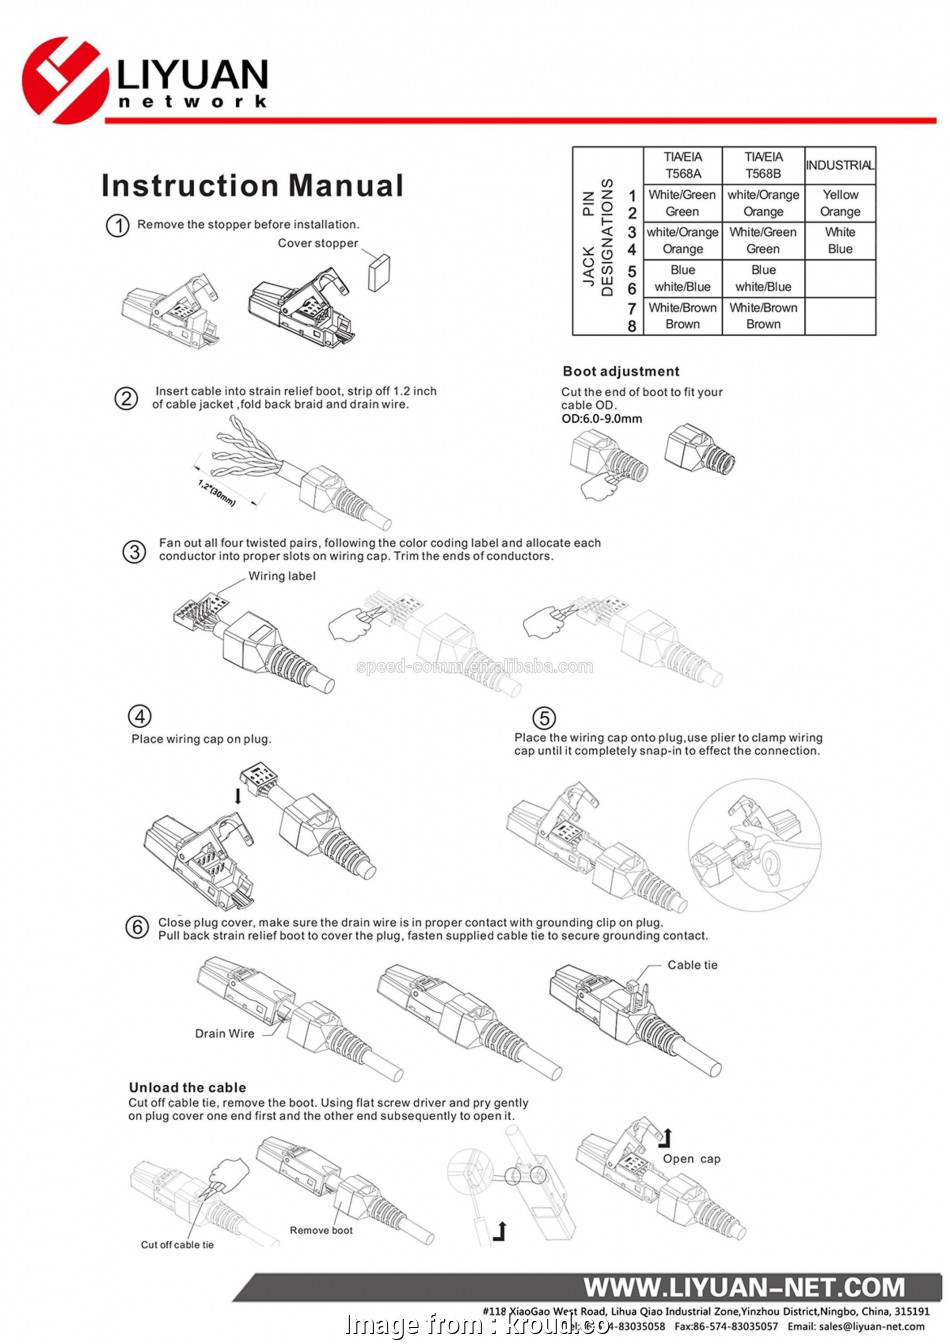 Electrical Outlet Wiring Series Brilliant Wiring Diagram